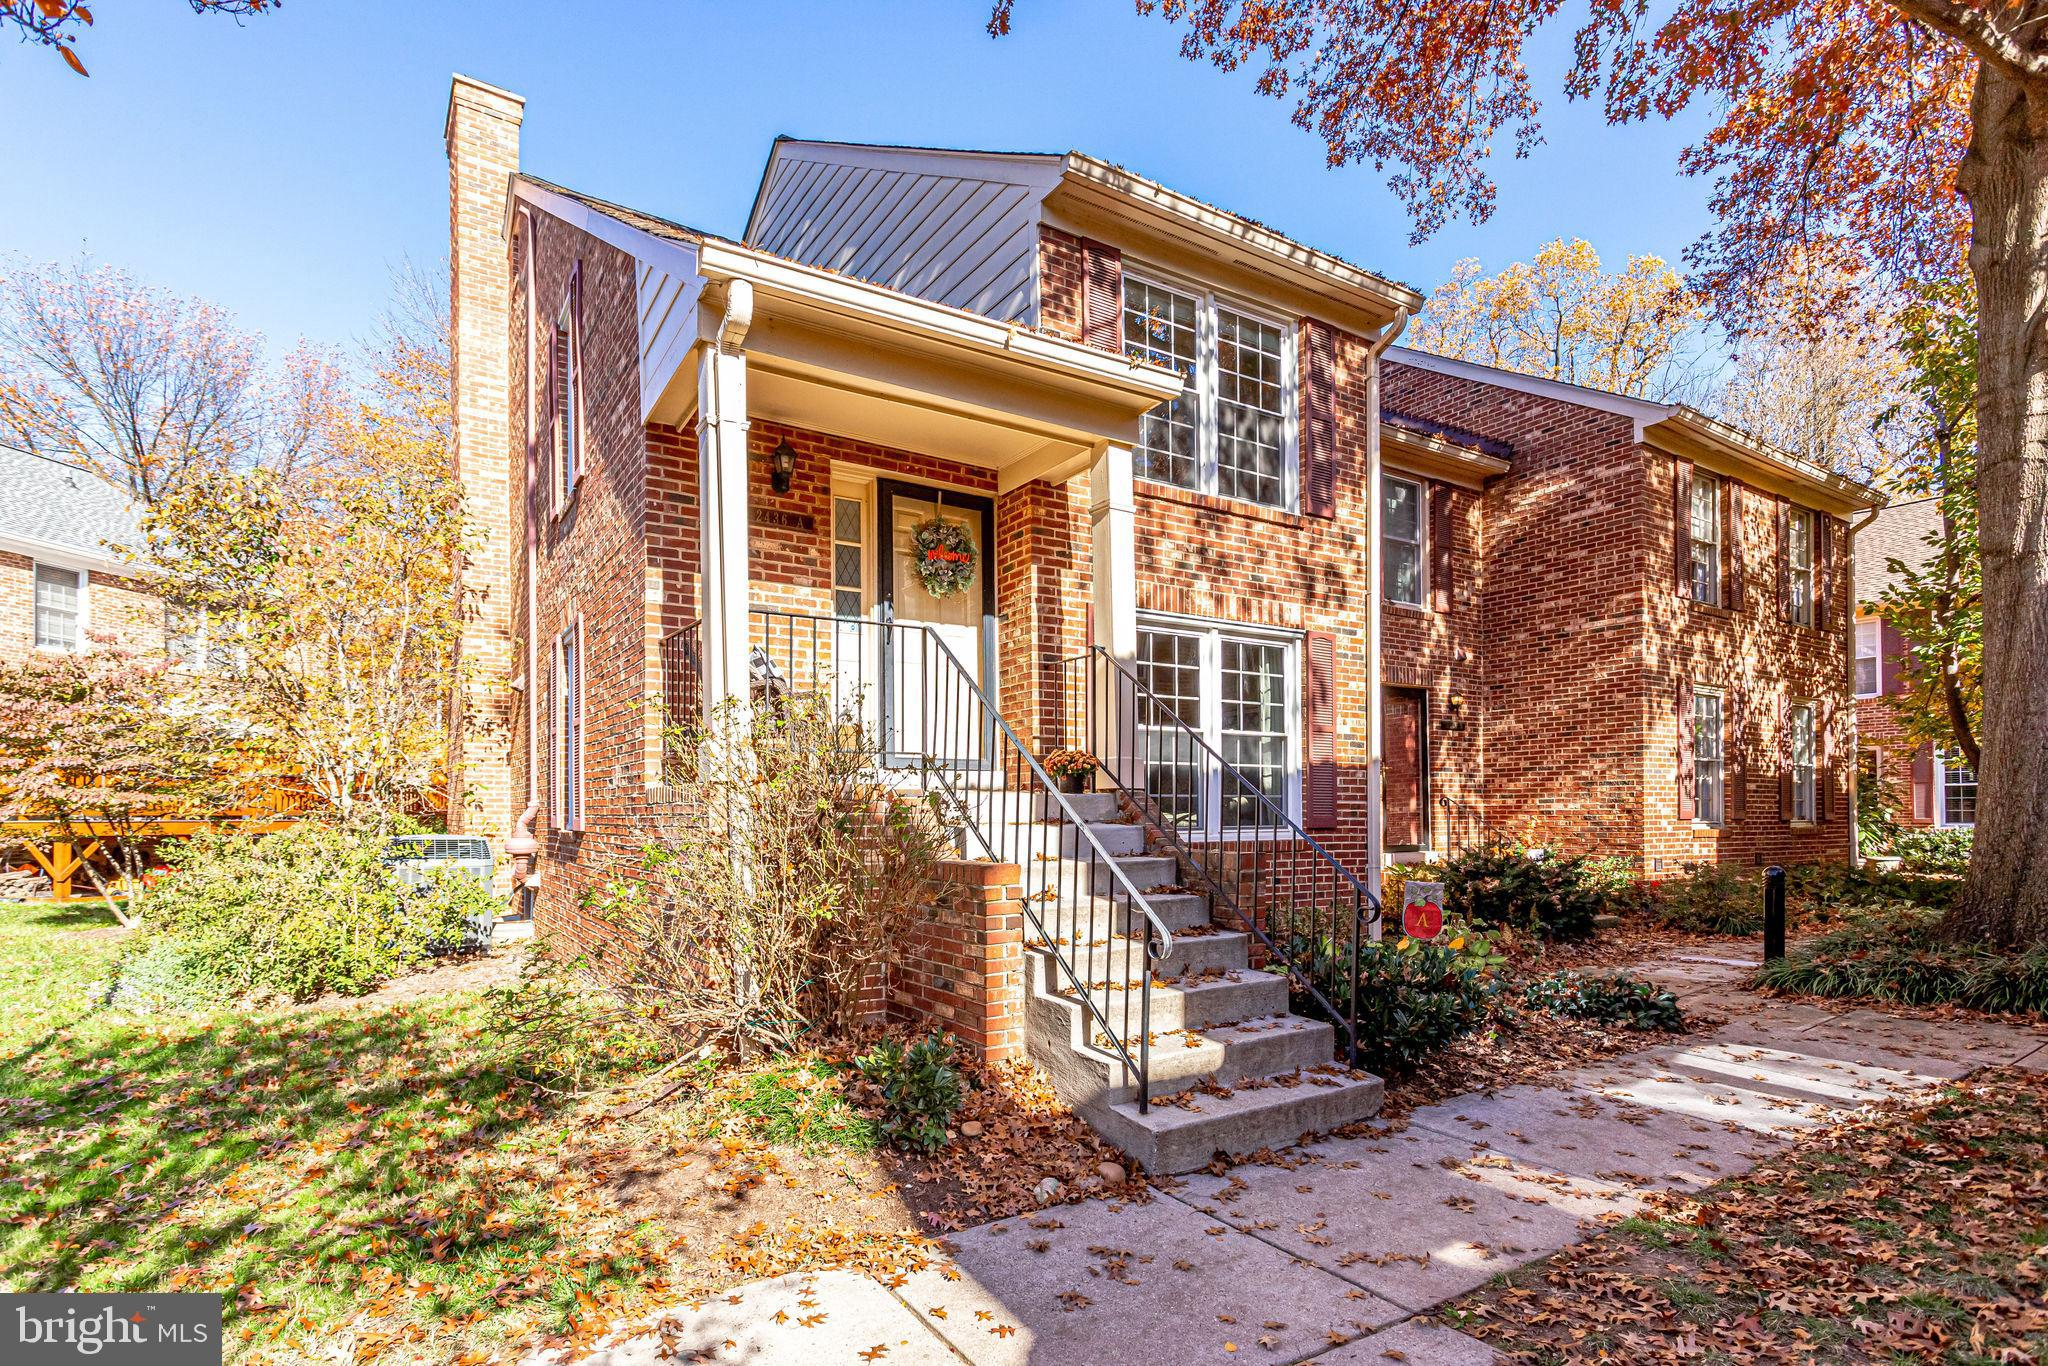 Gorgeous and light filled END UNIT!!  RARE 4Br, 3.5Bth unit partially backing to trees, park and trail!!                                                                       2,138 TOTAL SQ FT OF LIVING SPACE !!                                                                                        4th Br in bsmt is LEGAL!!  All brick exterior and stunning updates inside: Hardwood floors , Kitchen w/Granite & Top of the Line Cabinets, Add'l Pantry in Dining Area, Craftman Stair Railings, Energy efficient Windows, Large fenced Patio. Updated Baths. Built in entertainment centers in both Family Rooms, Laundry Room is Dry-walled--feels finished!  Storage space is excellent for a house this size.  Shows like a new Home!!  1/2mile to Shirlington, quick drive or bus to Pentagon, Rosslyn, Amazon HQ2! Abundant neighborhood restaurants and shops nearby!! Move in and enjoy the good life!!